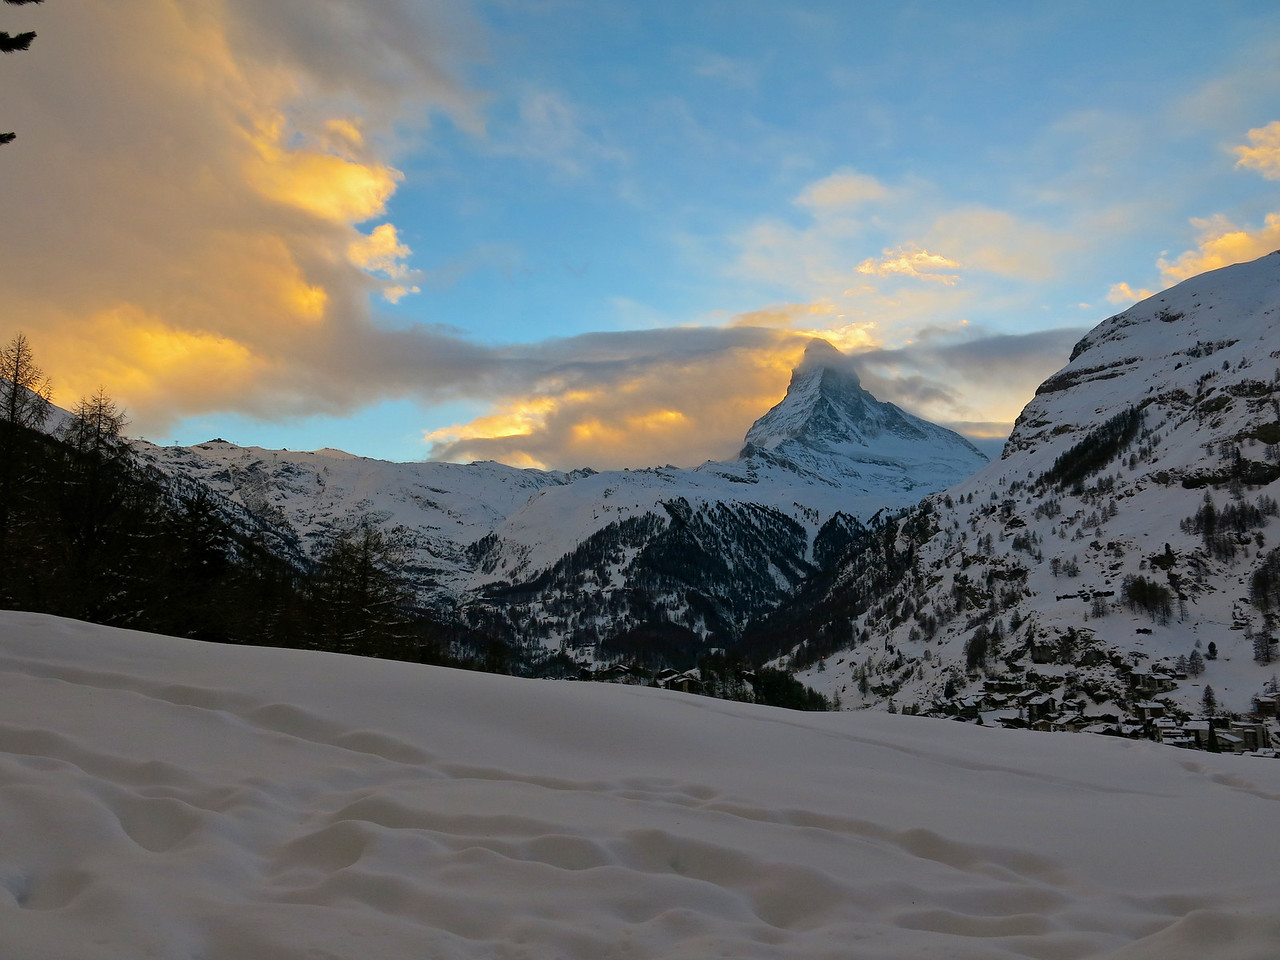 Sunset views of the Matterhorn from the west deck and hot tub.